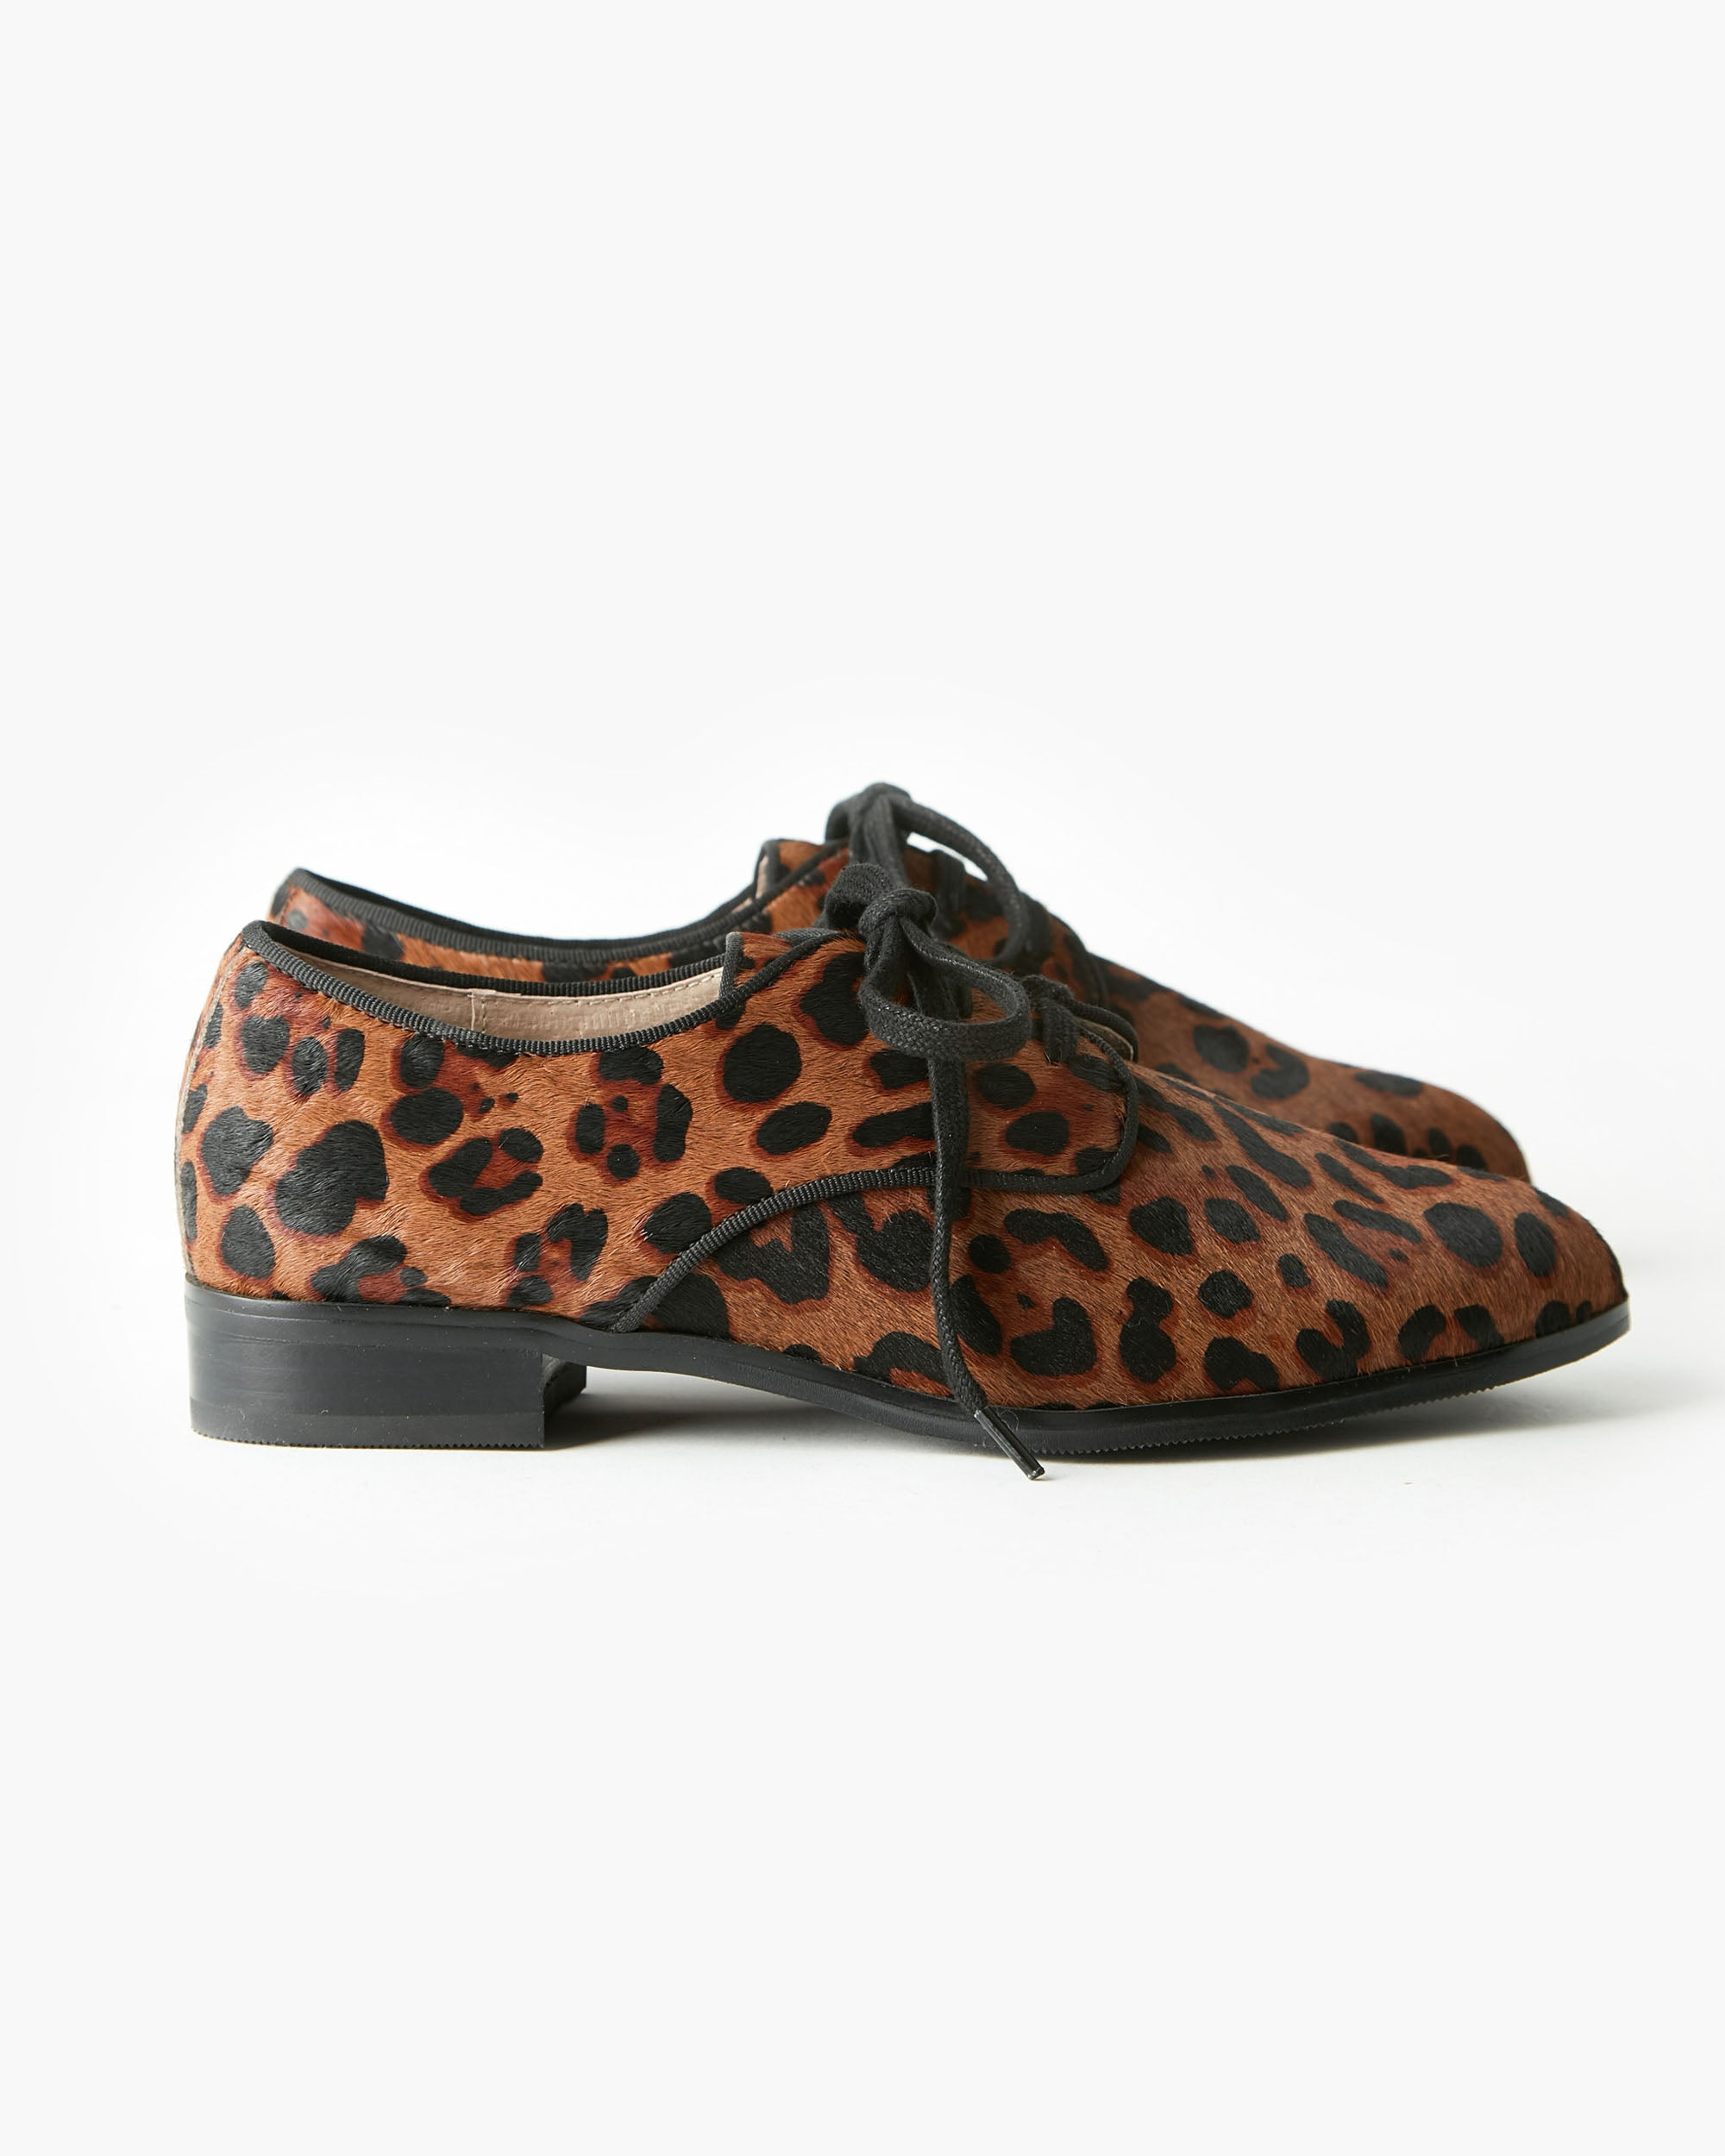 Alanta Leather Lace Up Brogue - Chocolate Leopard